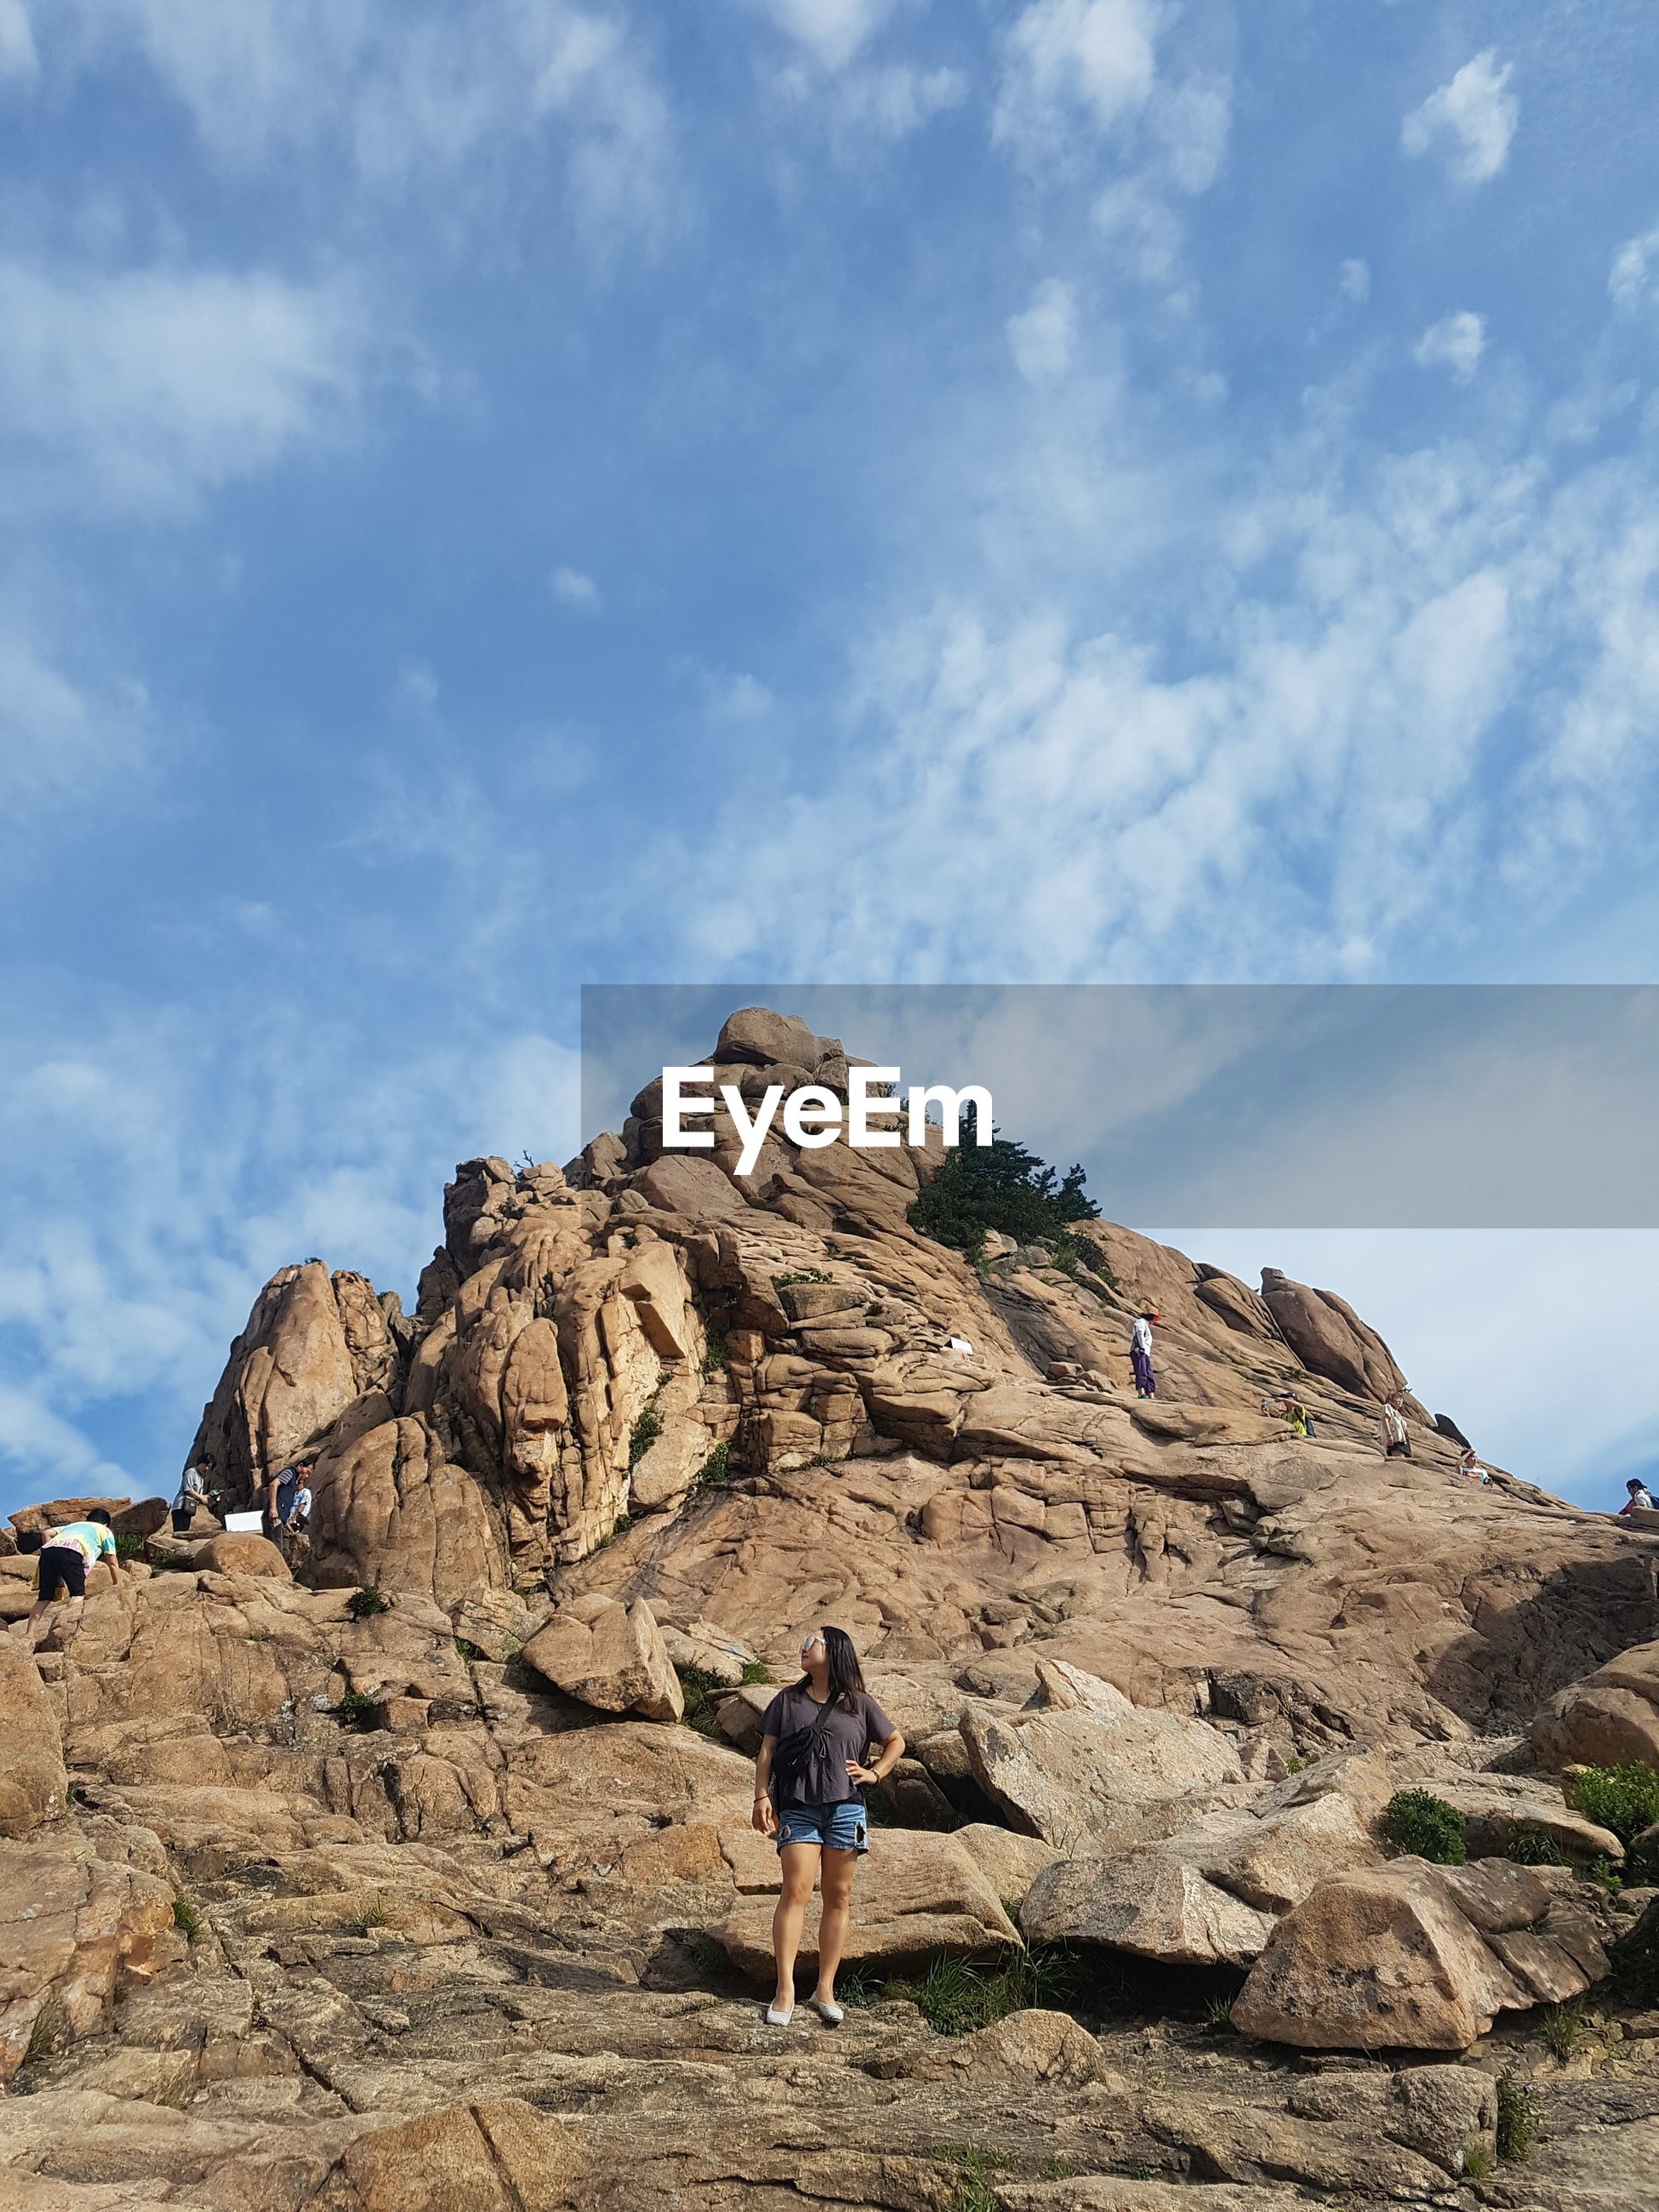 Woman standing on rock formation against cloudy sky